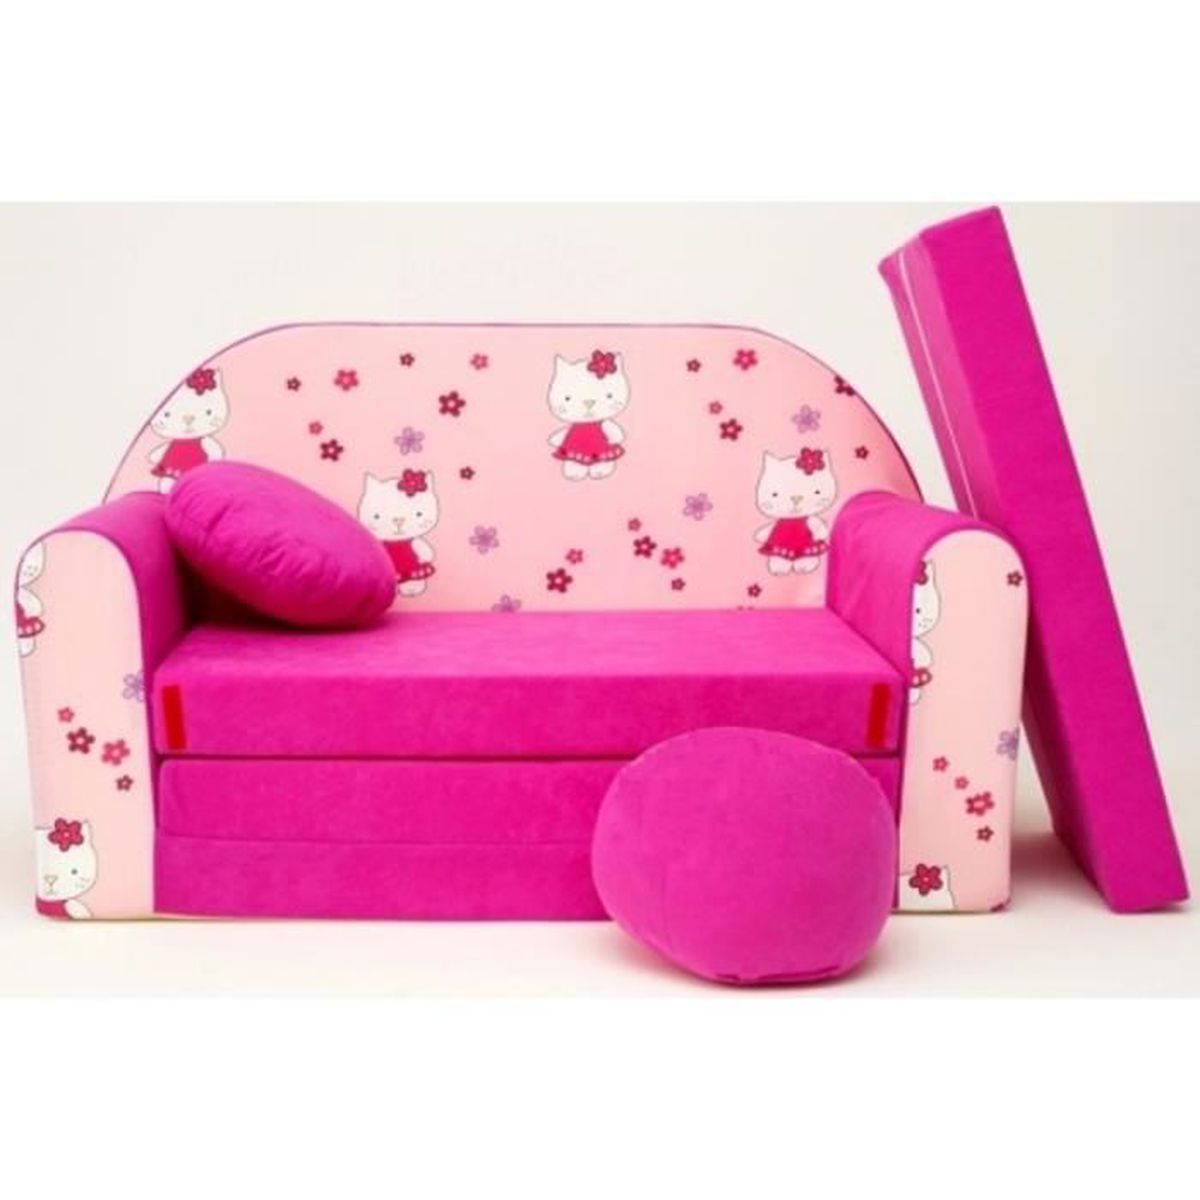 Canape sofa enfant 2 places convertible hello kitty rose - Canape enfant places ...